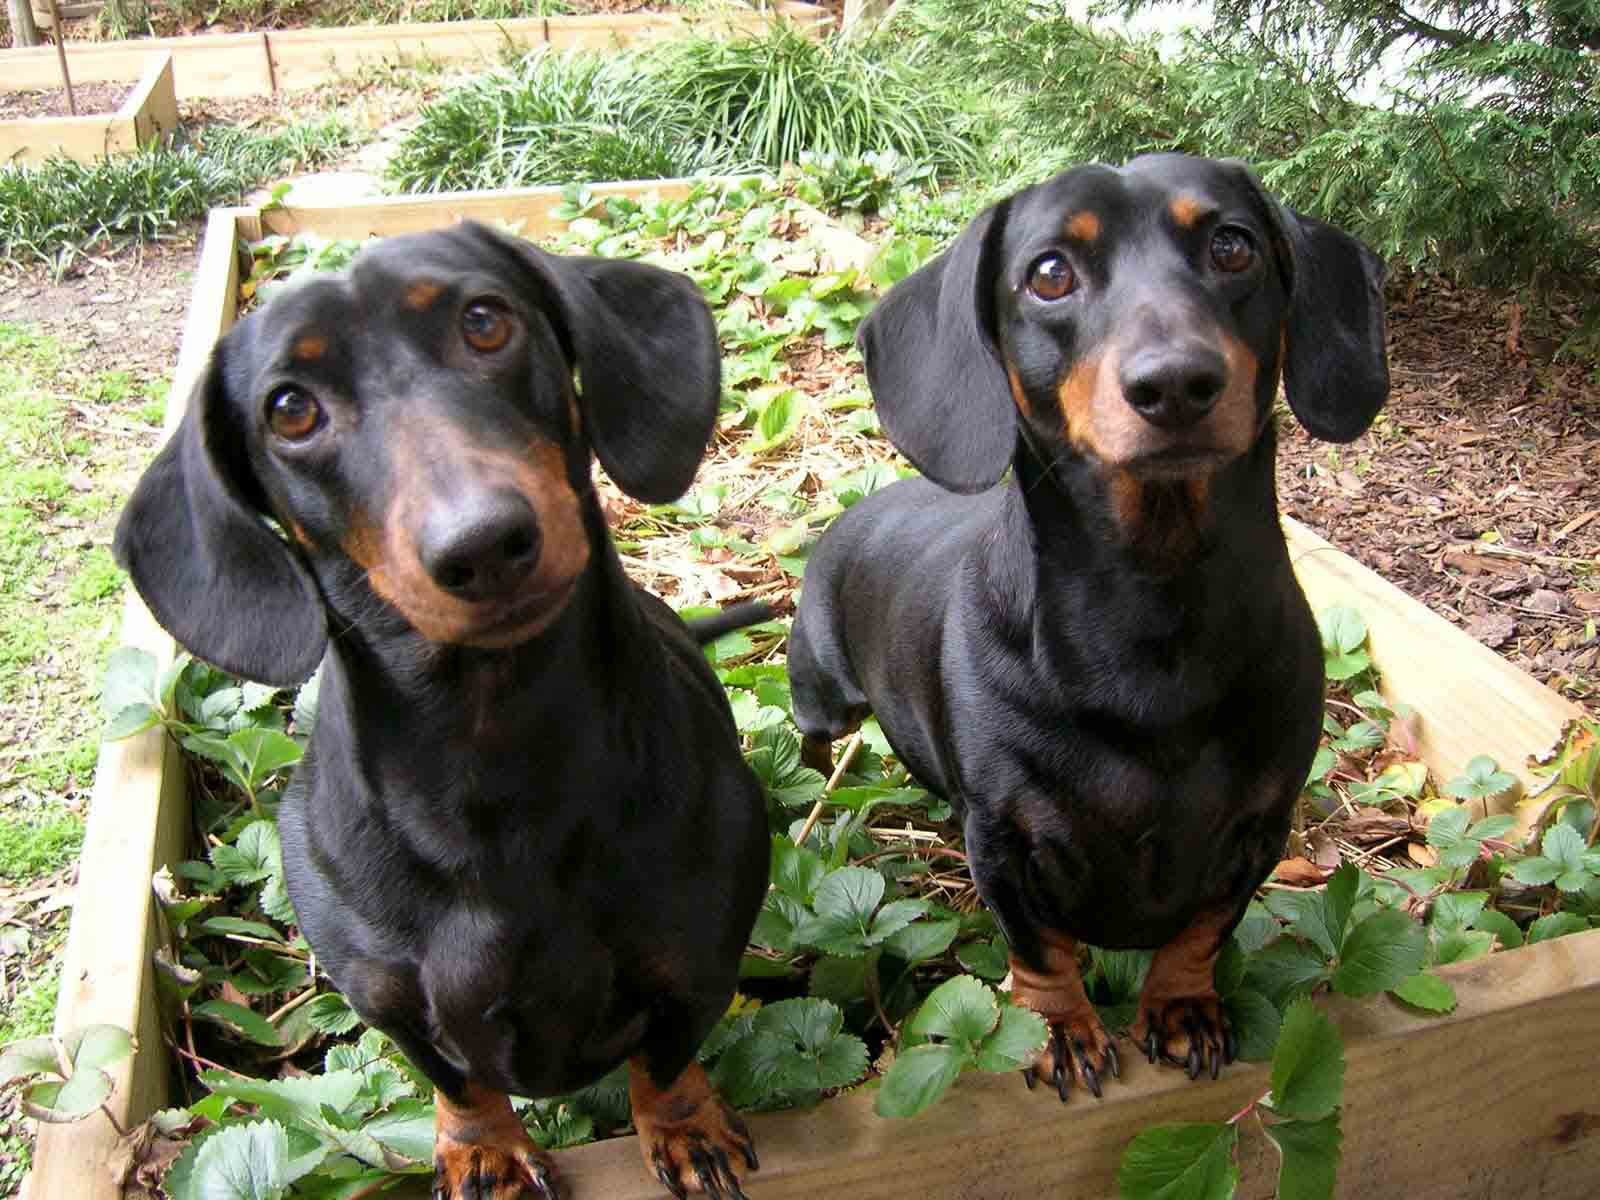 Dachshund family images